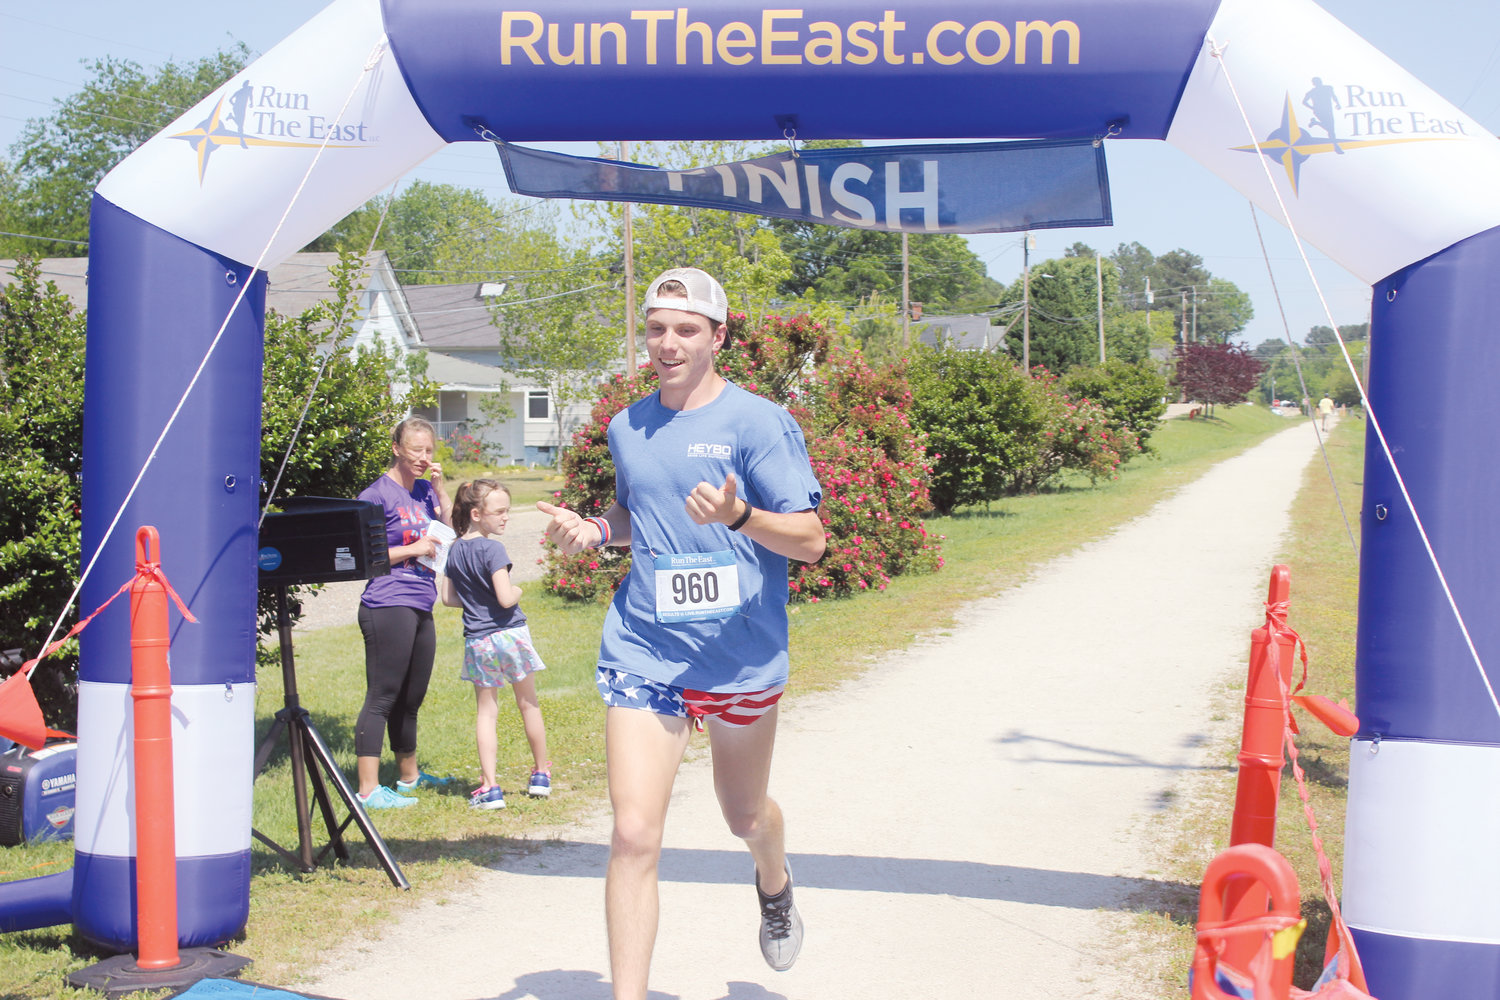 Kyle Hadding crosses the line to win the RailTrail Run for CareNet in Erwin on Sunday.